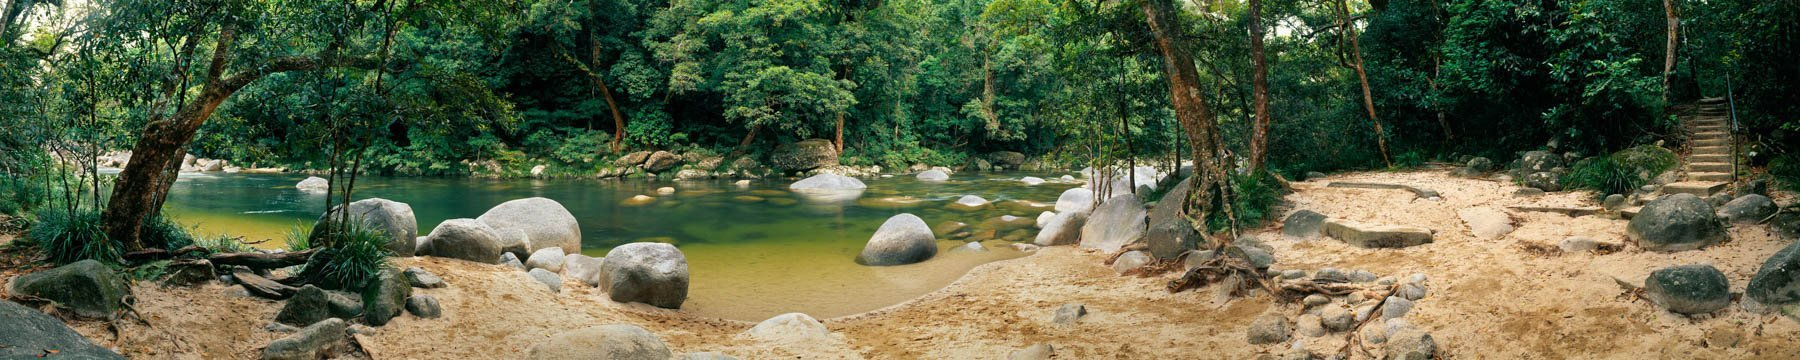 A refreshing swimming hole at Mossman Gorge, Qld, Australia.